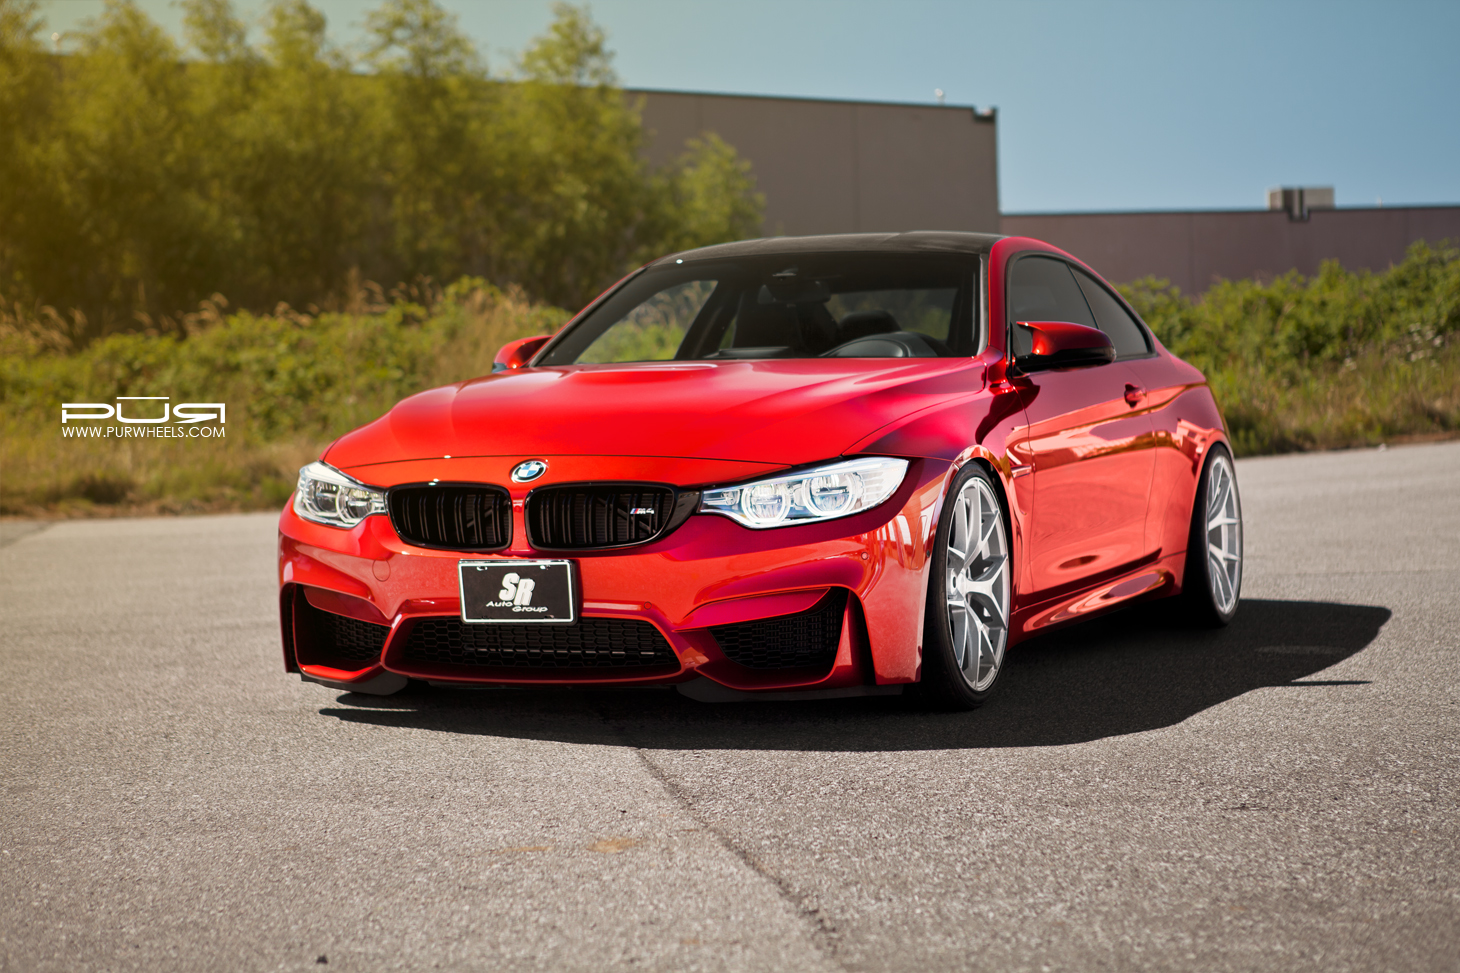 BMW Aftermarket Parts >> Tuned Sakhir Orange BMW M4 Is Fiery Hot - autoevolution